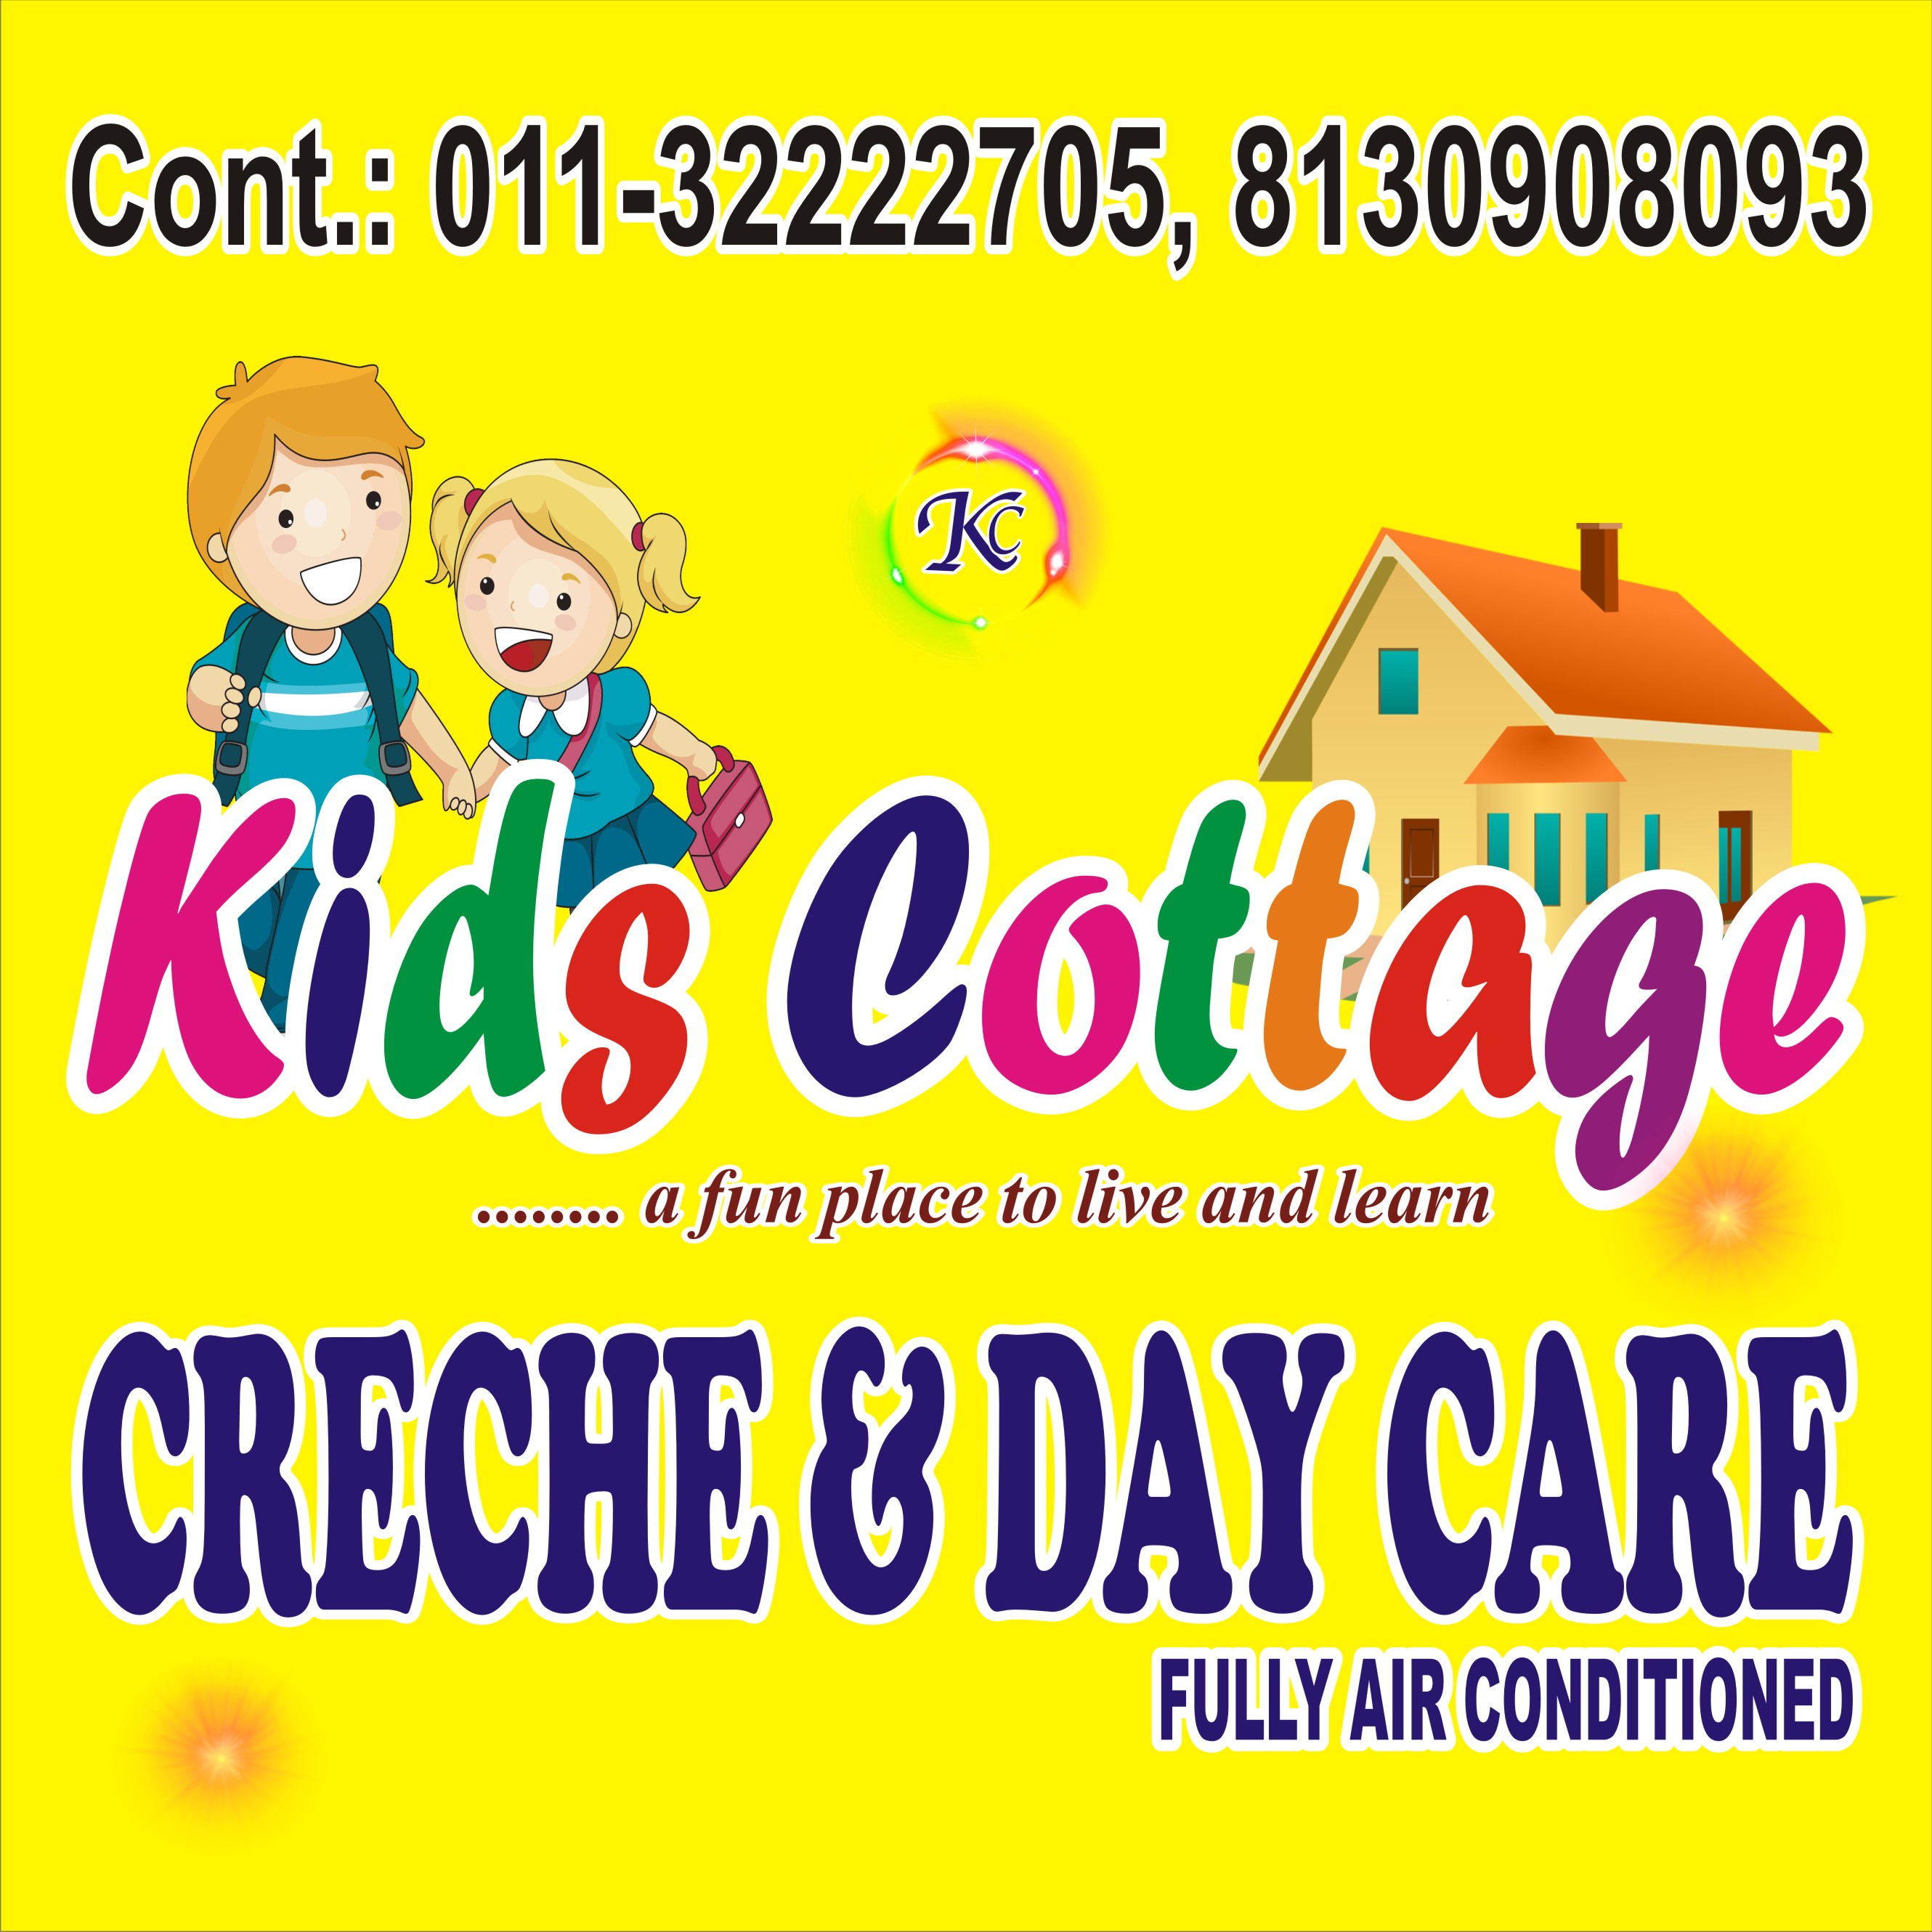 Kids Cottage Creche & Day care-SchoSys.com